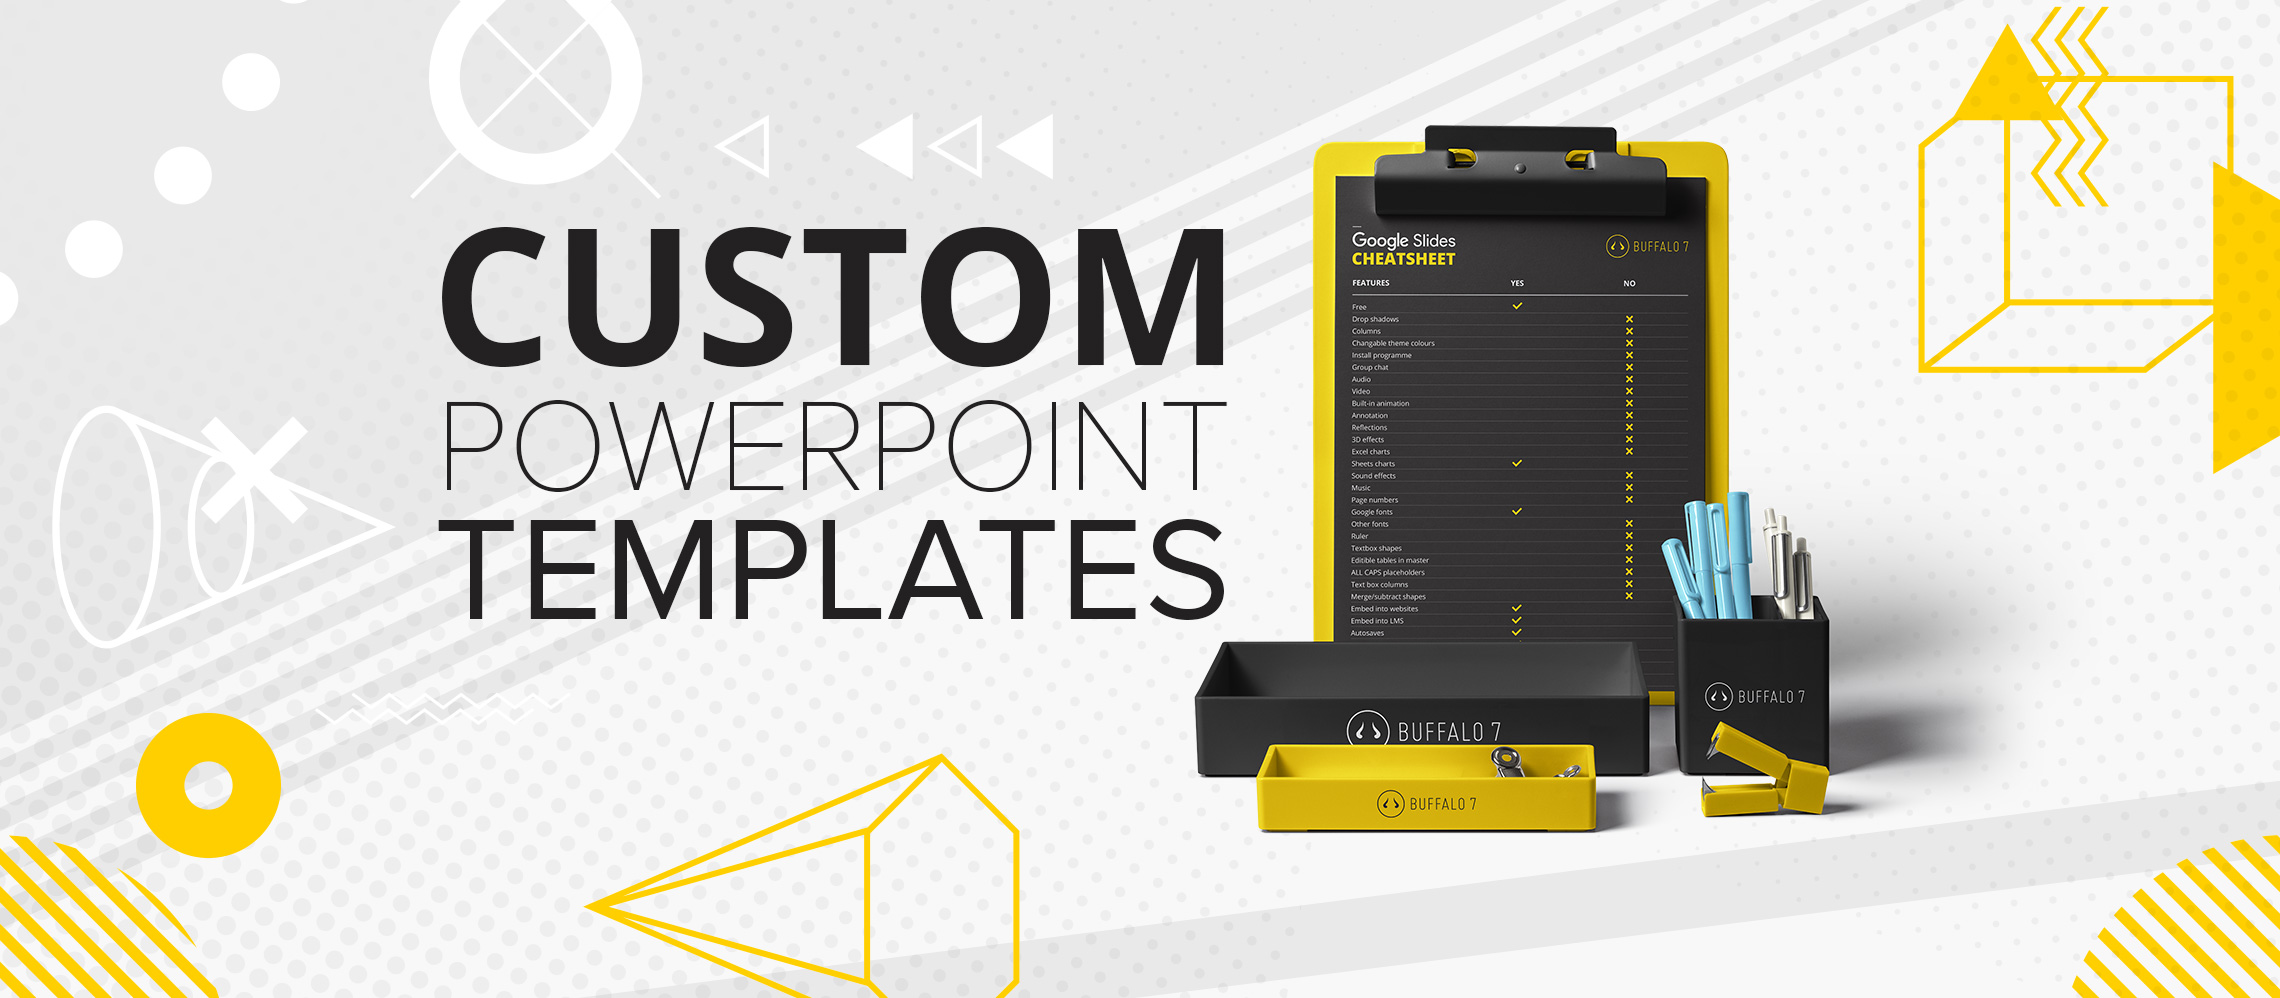 How to create a custom powerpoint template buffalo 7 for How to customize a powerpoint template